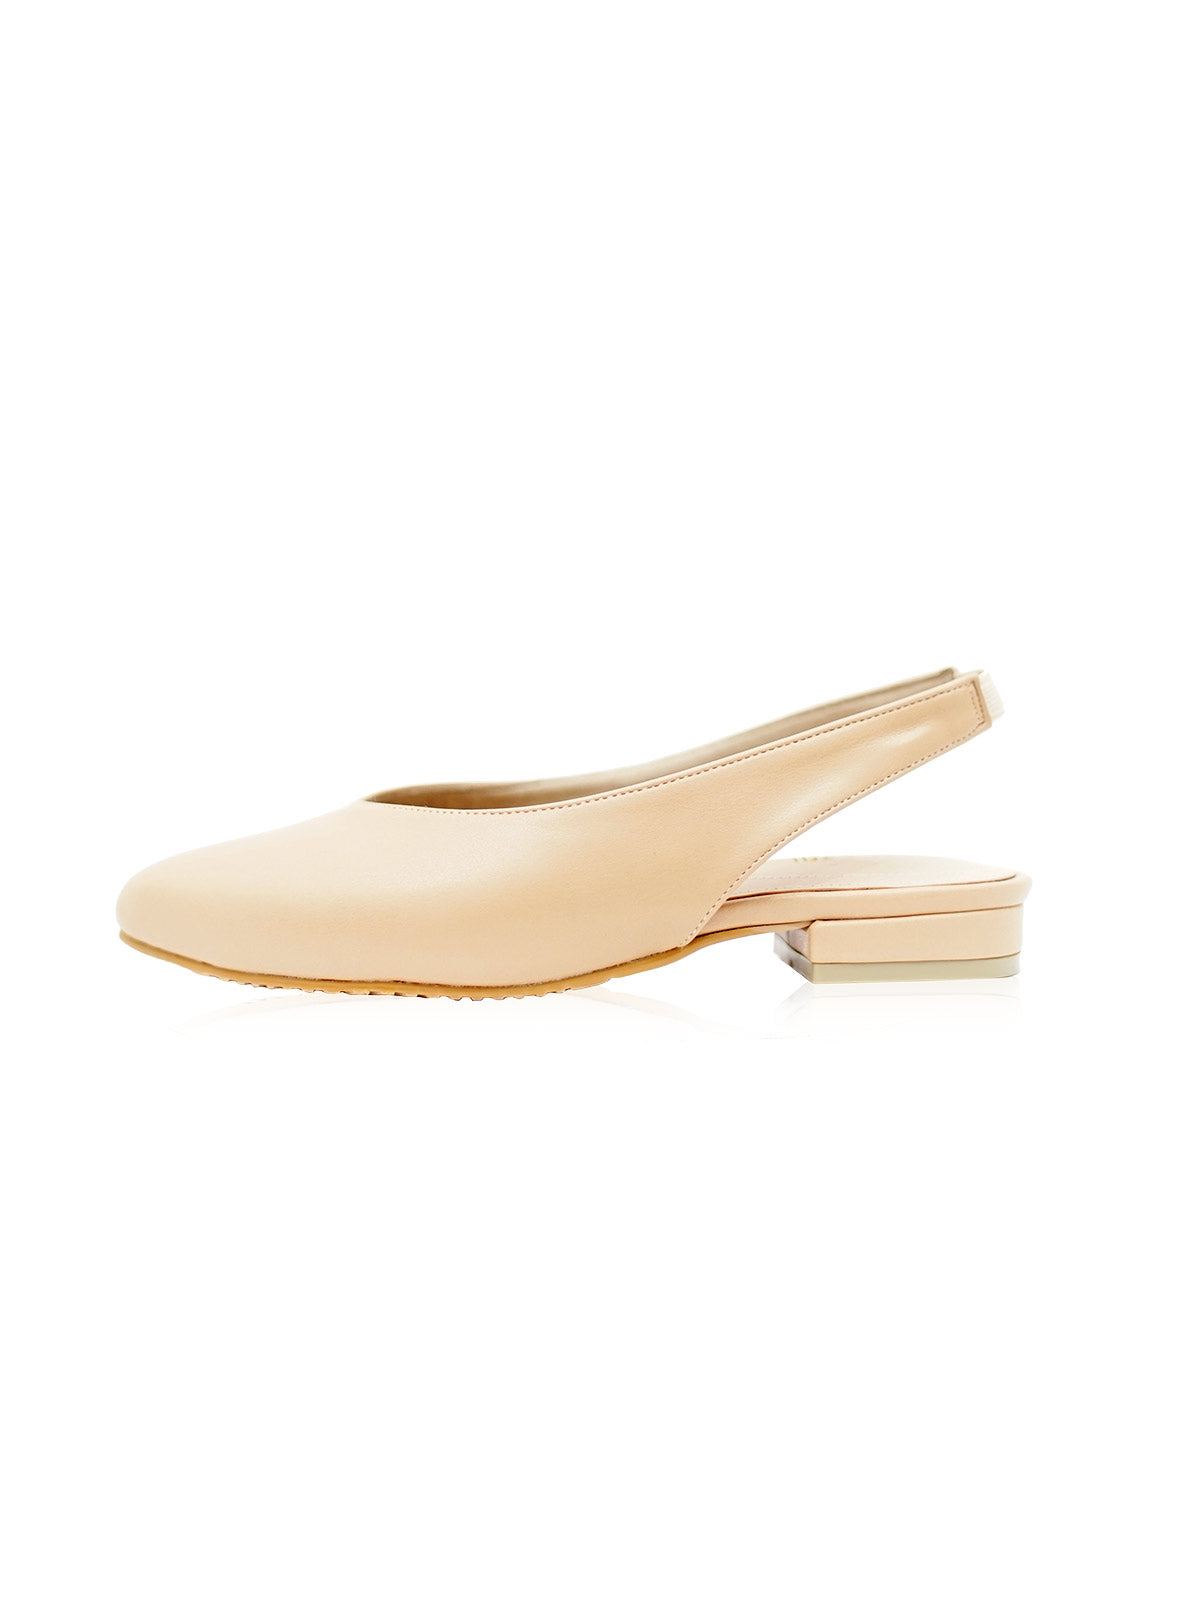 Layla Flats in Nude